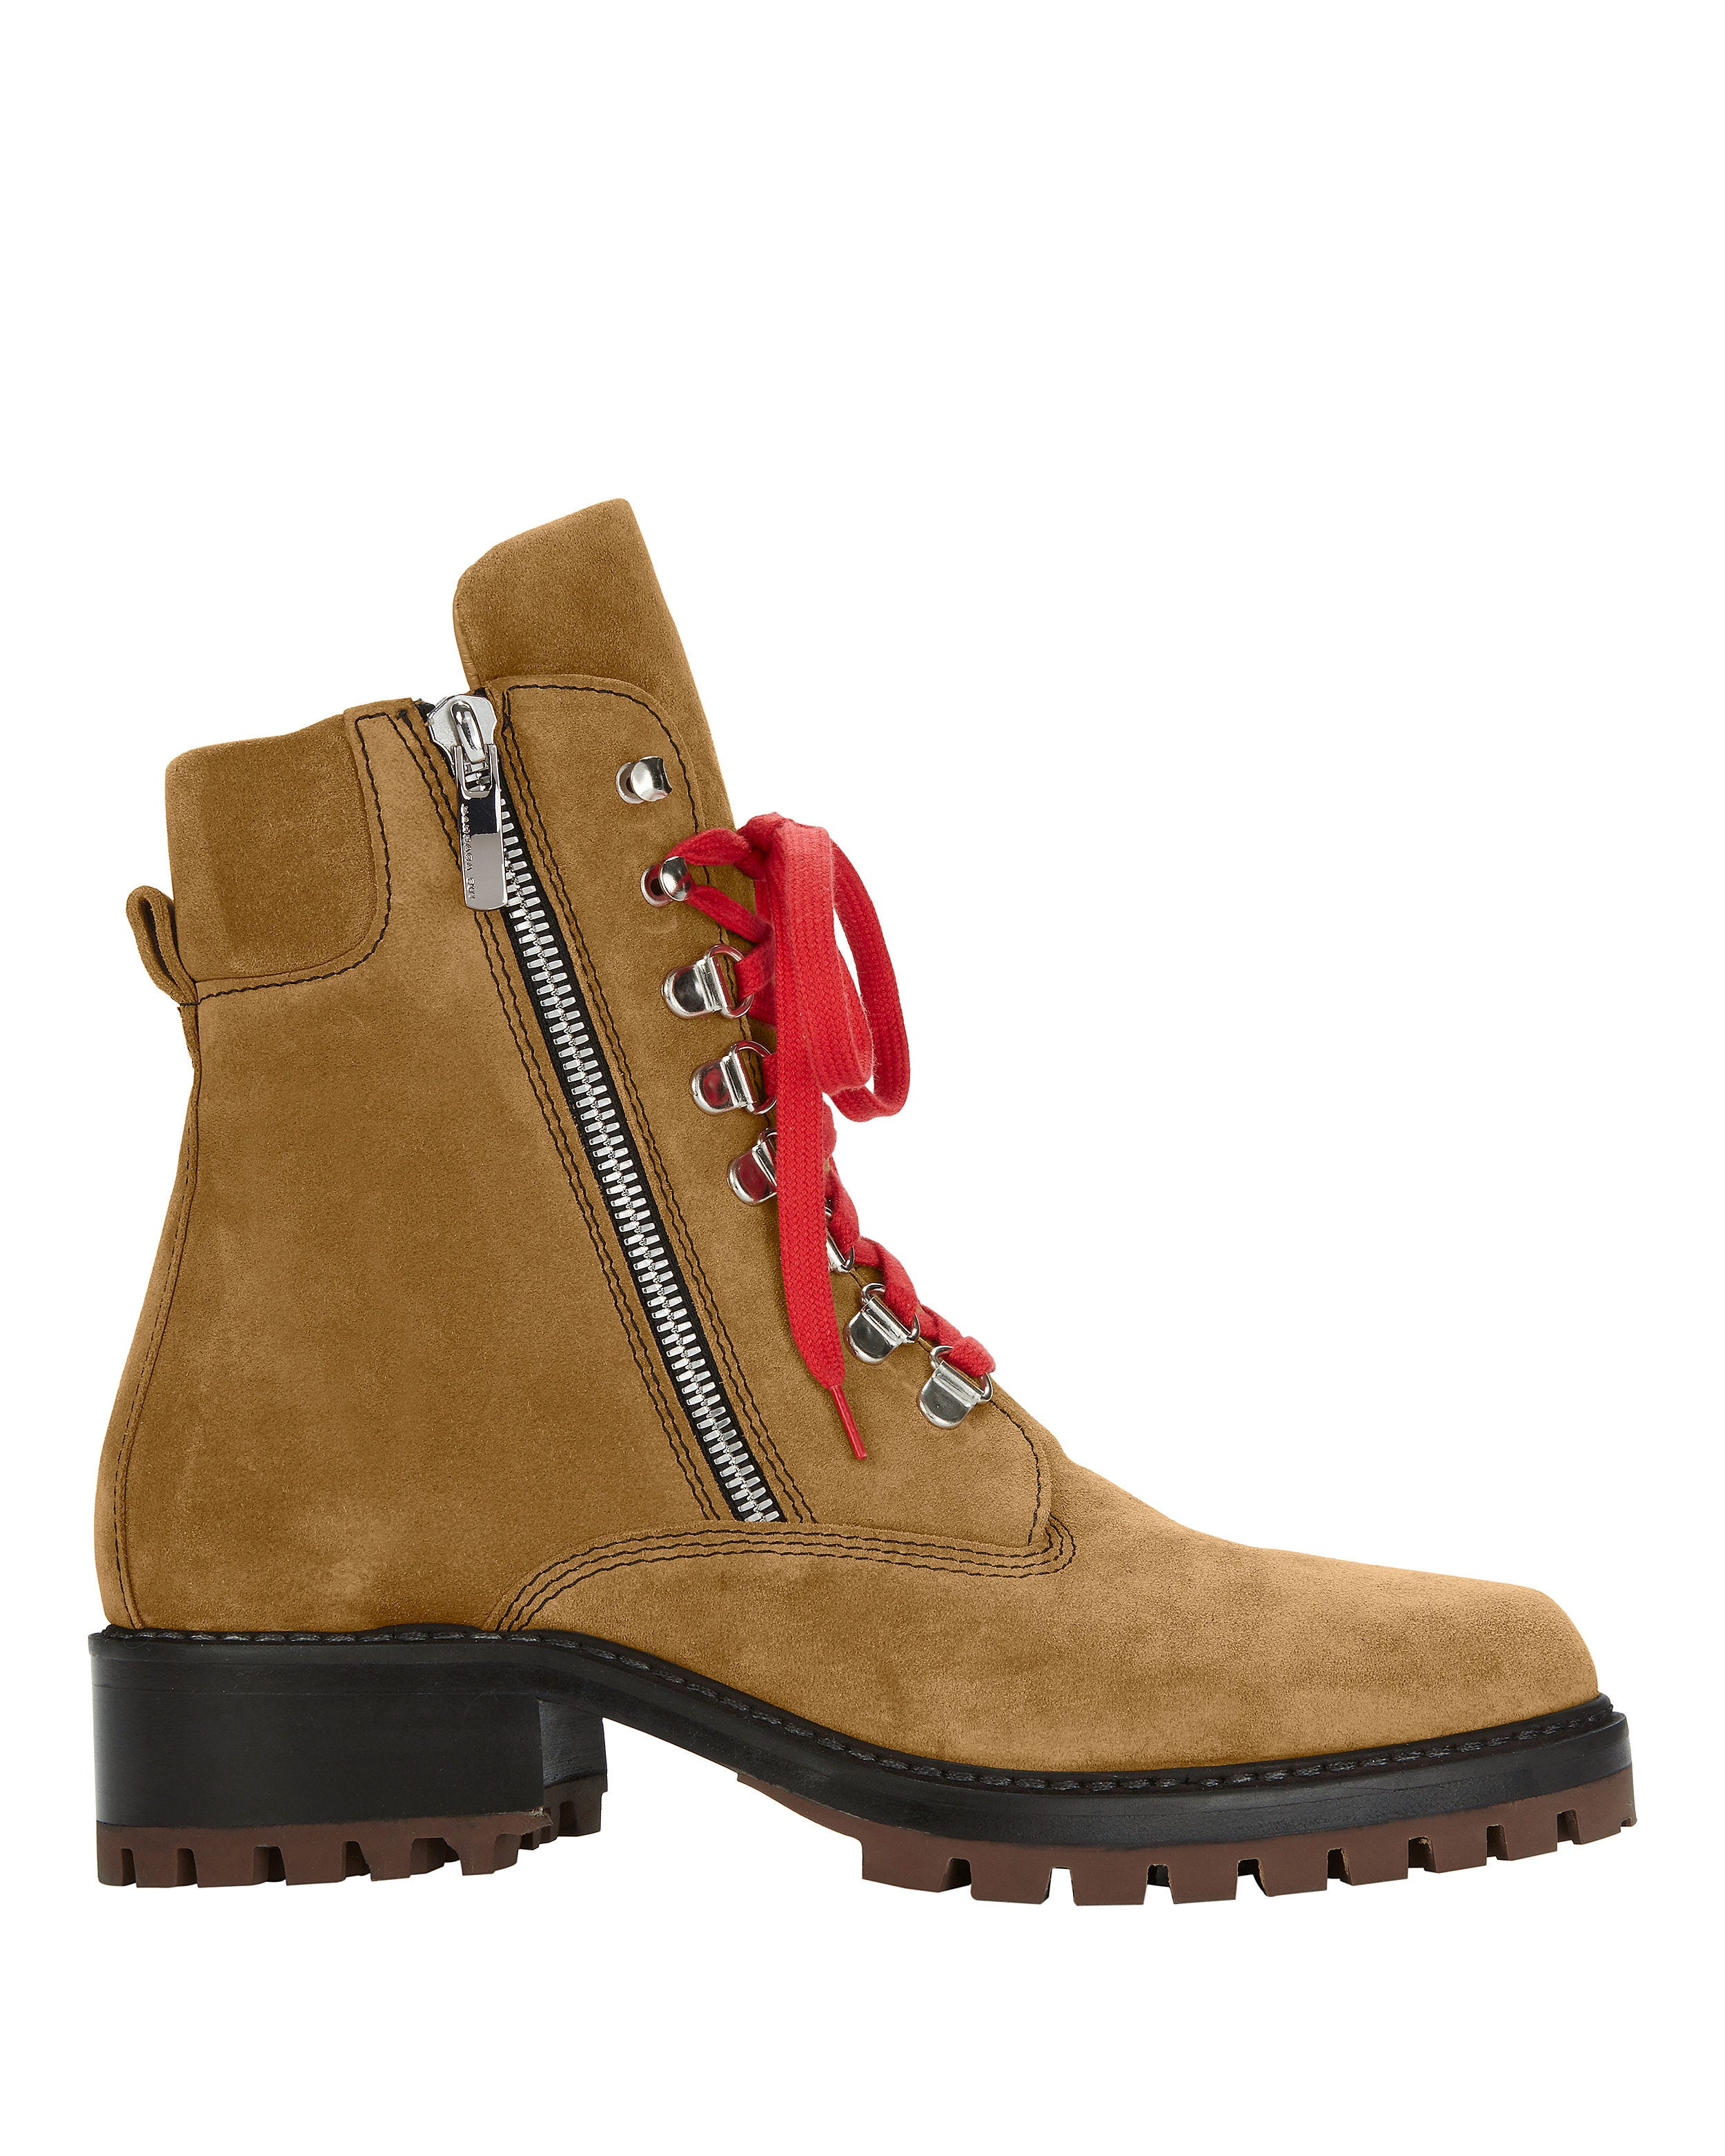 shoe all vogue winter snow from comfortable office streets the article for to comforter editor walking wear weather style best boots